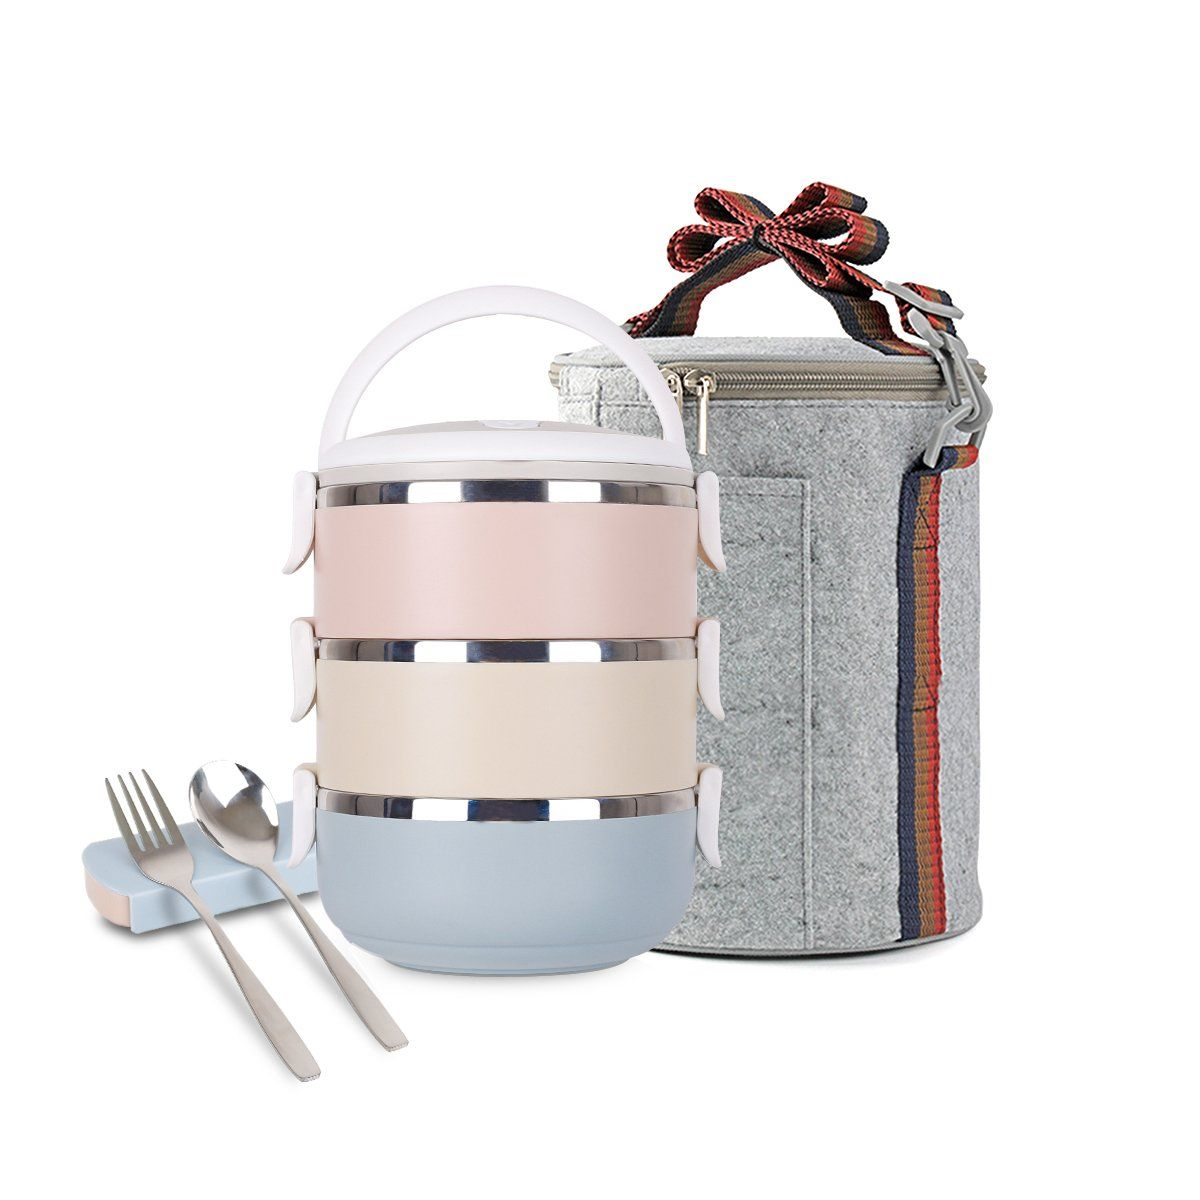 Stainless Steel Square Lunch Box,Insulated Lunch Bags Set,Spoon and fork Set Heat//Lock Container and Insulated Lunch Bag for Adult and Office 3-Tier